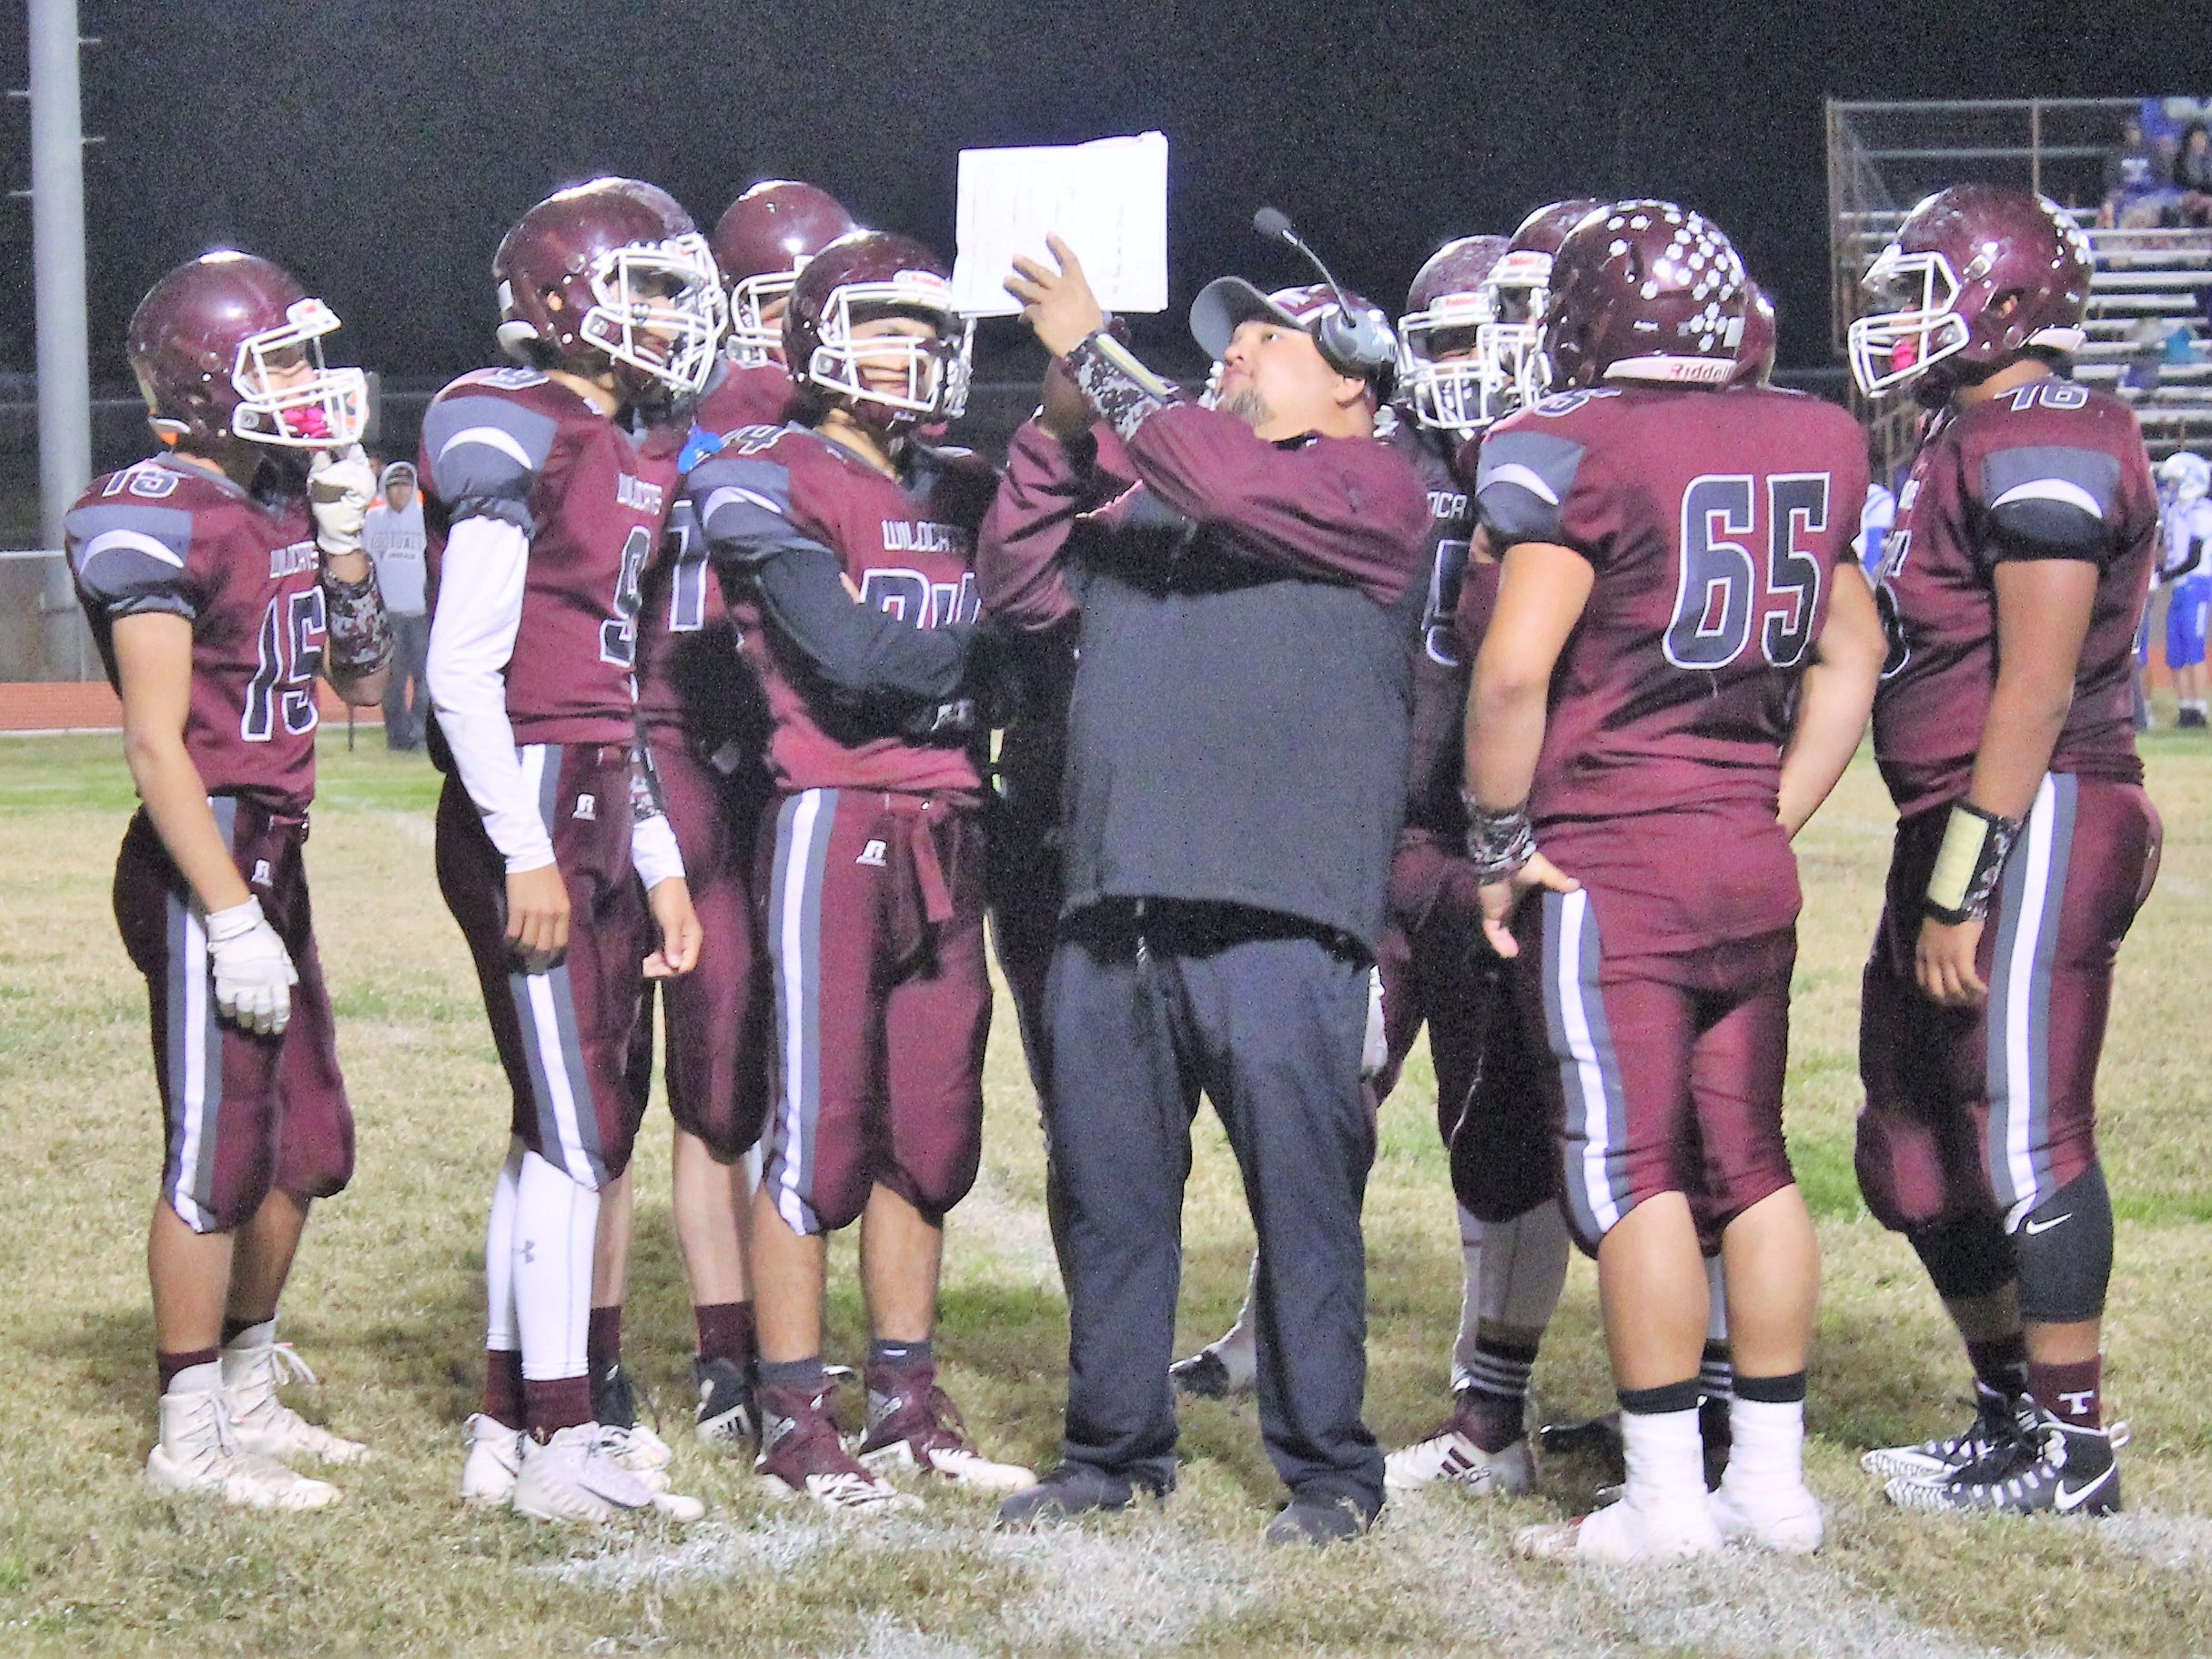 Tularosa Wildcats Assistant Coach Chance Coates reviews plays during a timeout at Friday night's game with the Dexter Demons.